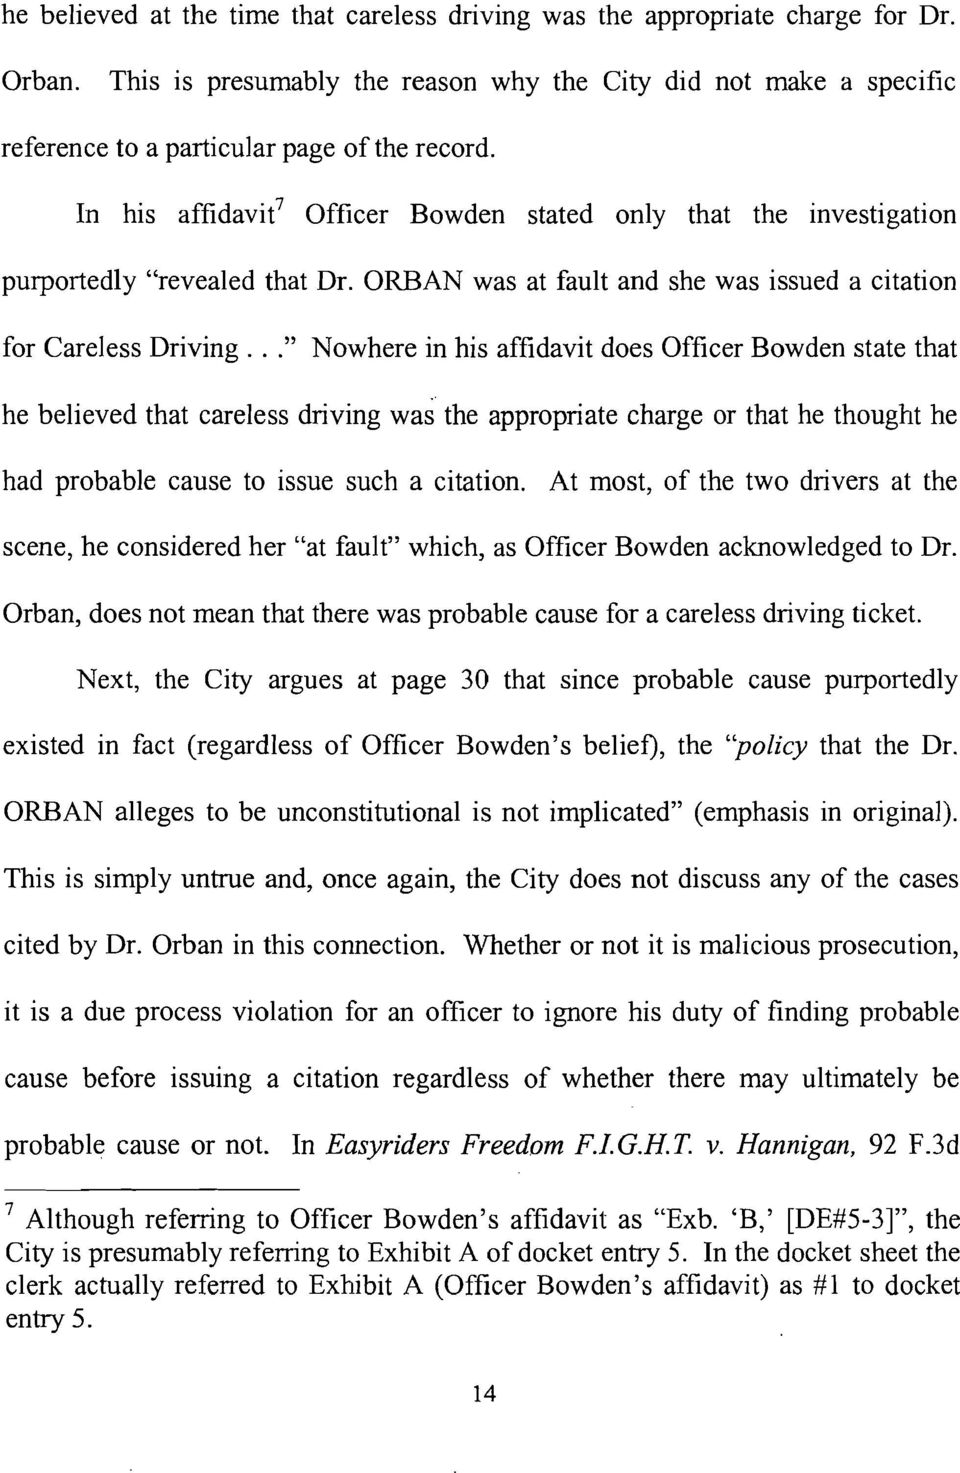 ".."" Nowhere in his affidavit does Officer Bowden state that he believed that careless driving was the appropriate charge or that he thought he had probable cause to issue such a citation."